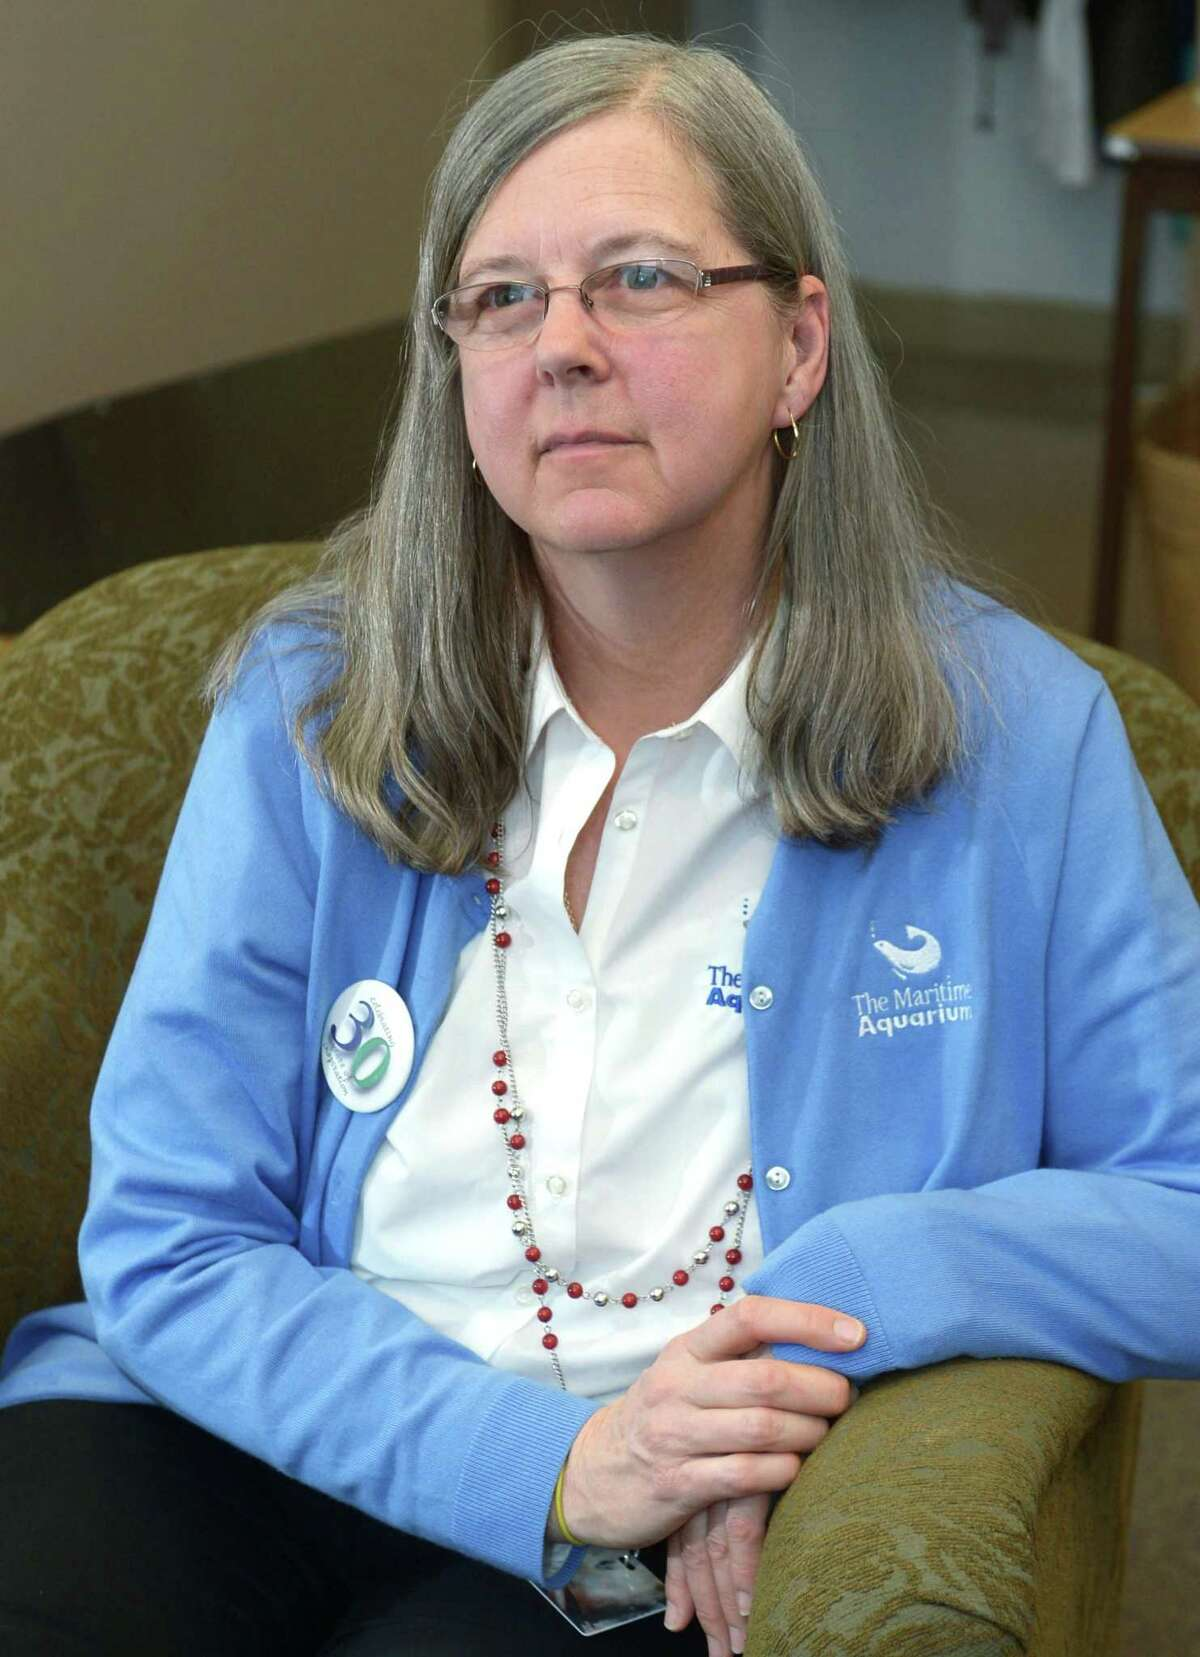 Lisa Slinsky, Assistant Director, Volunteer and Community Services at The Maritime Aquarium in the volunteer lounge Tuesday, February 13, 2018, in Norwalk, Conn. Slinsky, a longtime Aquarium staffer coordinates the small army of volunteers who work any number of jobs at the region's largest tourist magnet, from answering questions at the Jiggle A Jelly tank to diving in the shark tank.